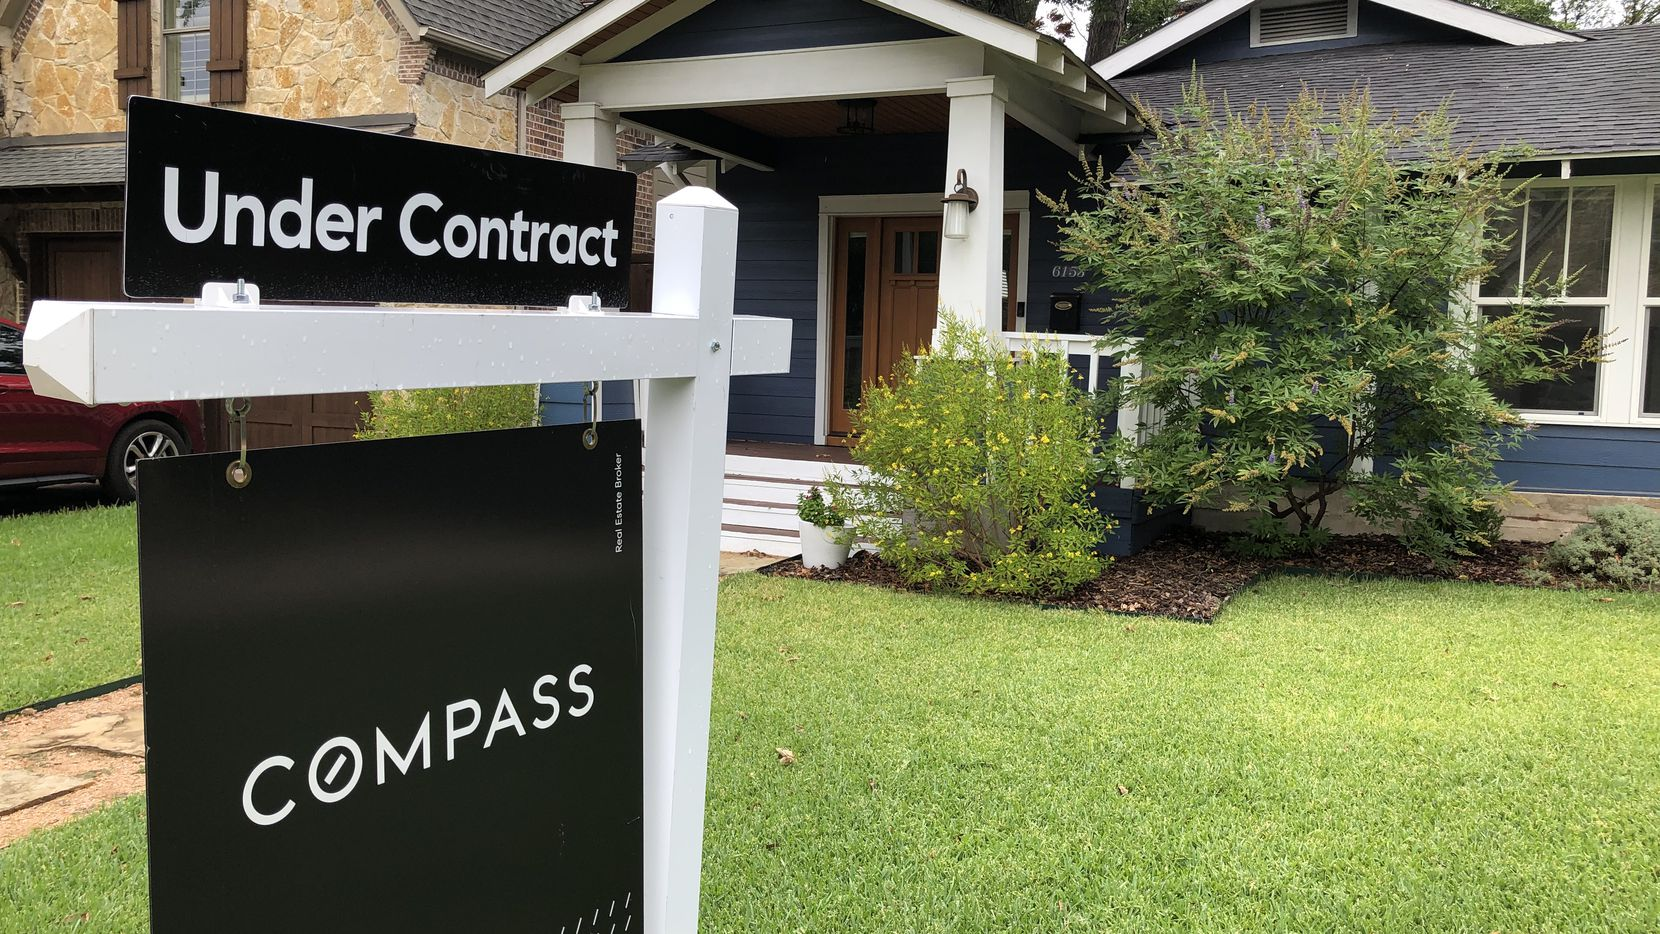 Dallas area home prices rose by almost 10.7% in March, according to CoreLogic.